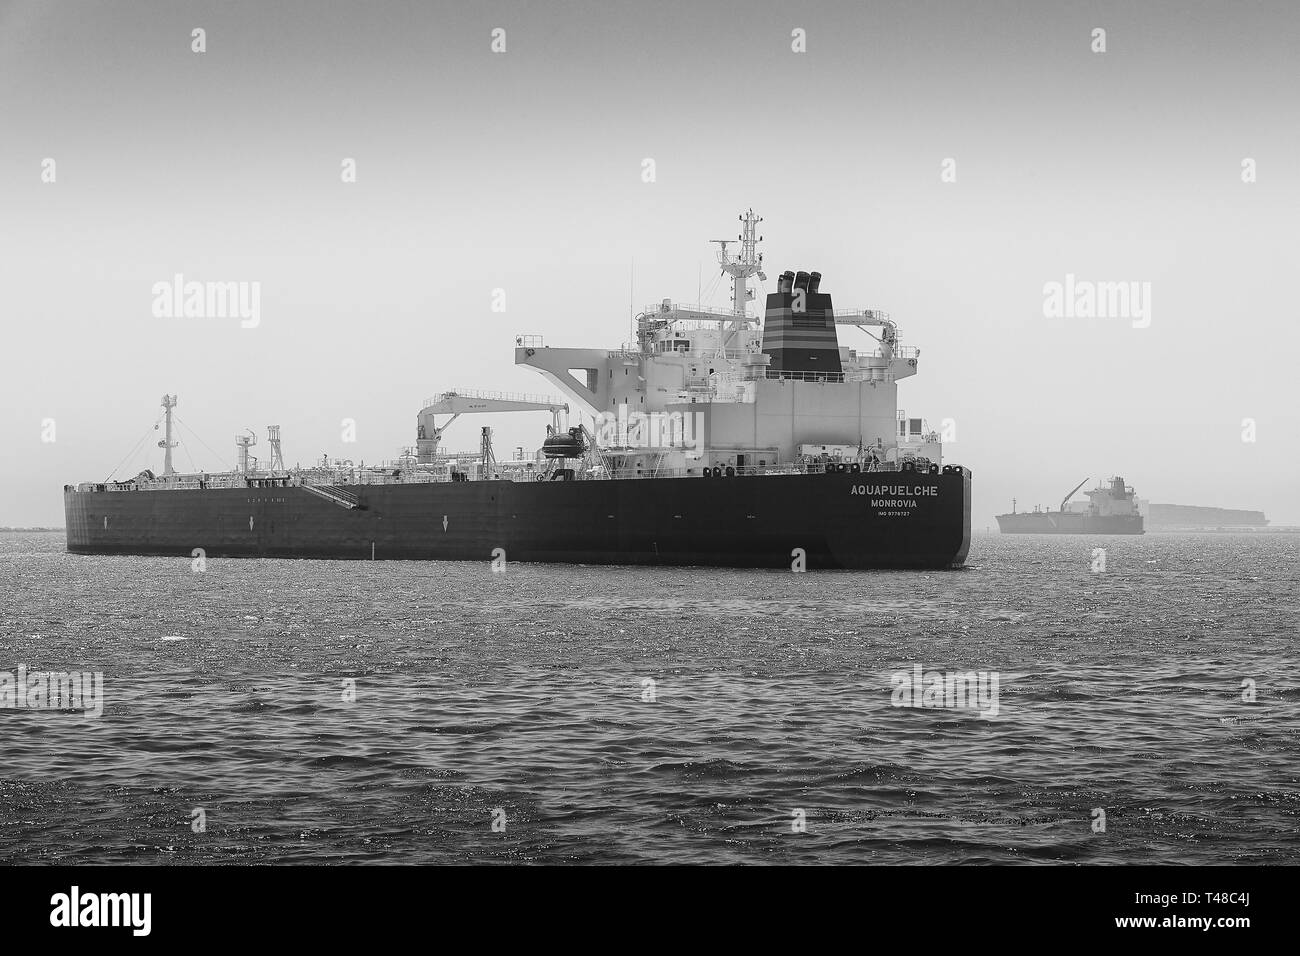 Black And White Photo Of The Supertanker, (Crude Oil Tanker), AQUAPUELCHE, Anchored In The Port Of Long Beach, California, USA. - Stock Image